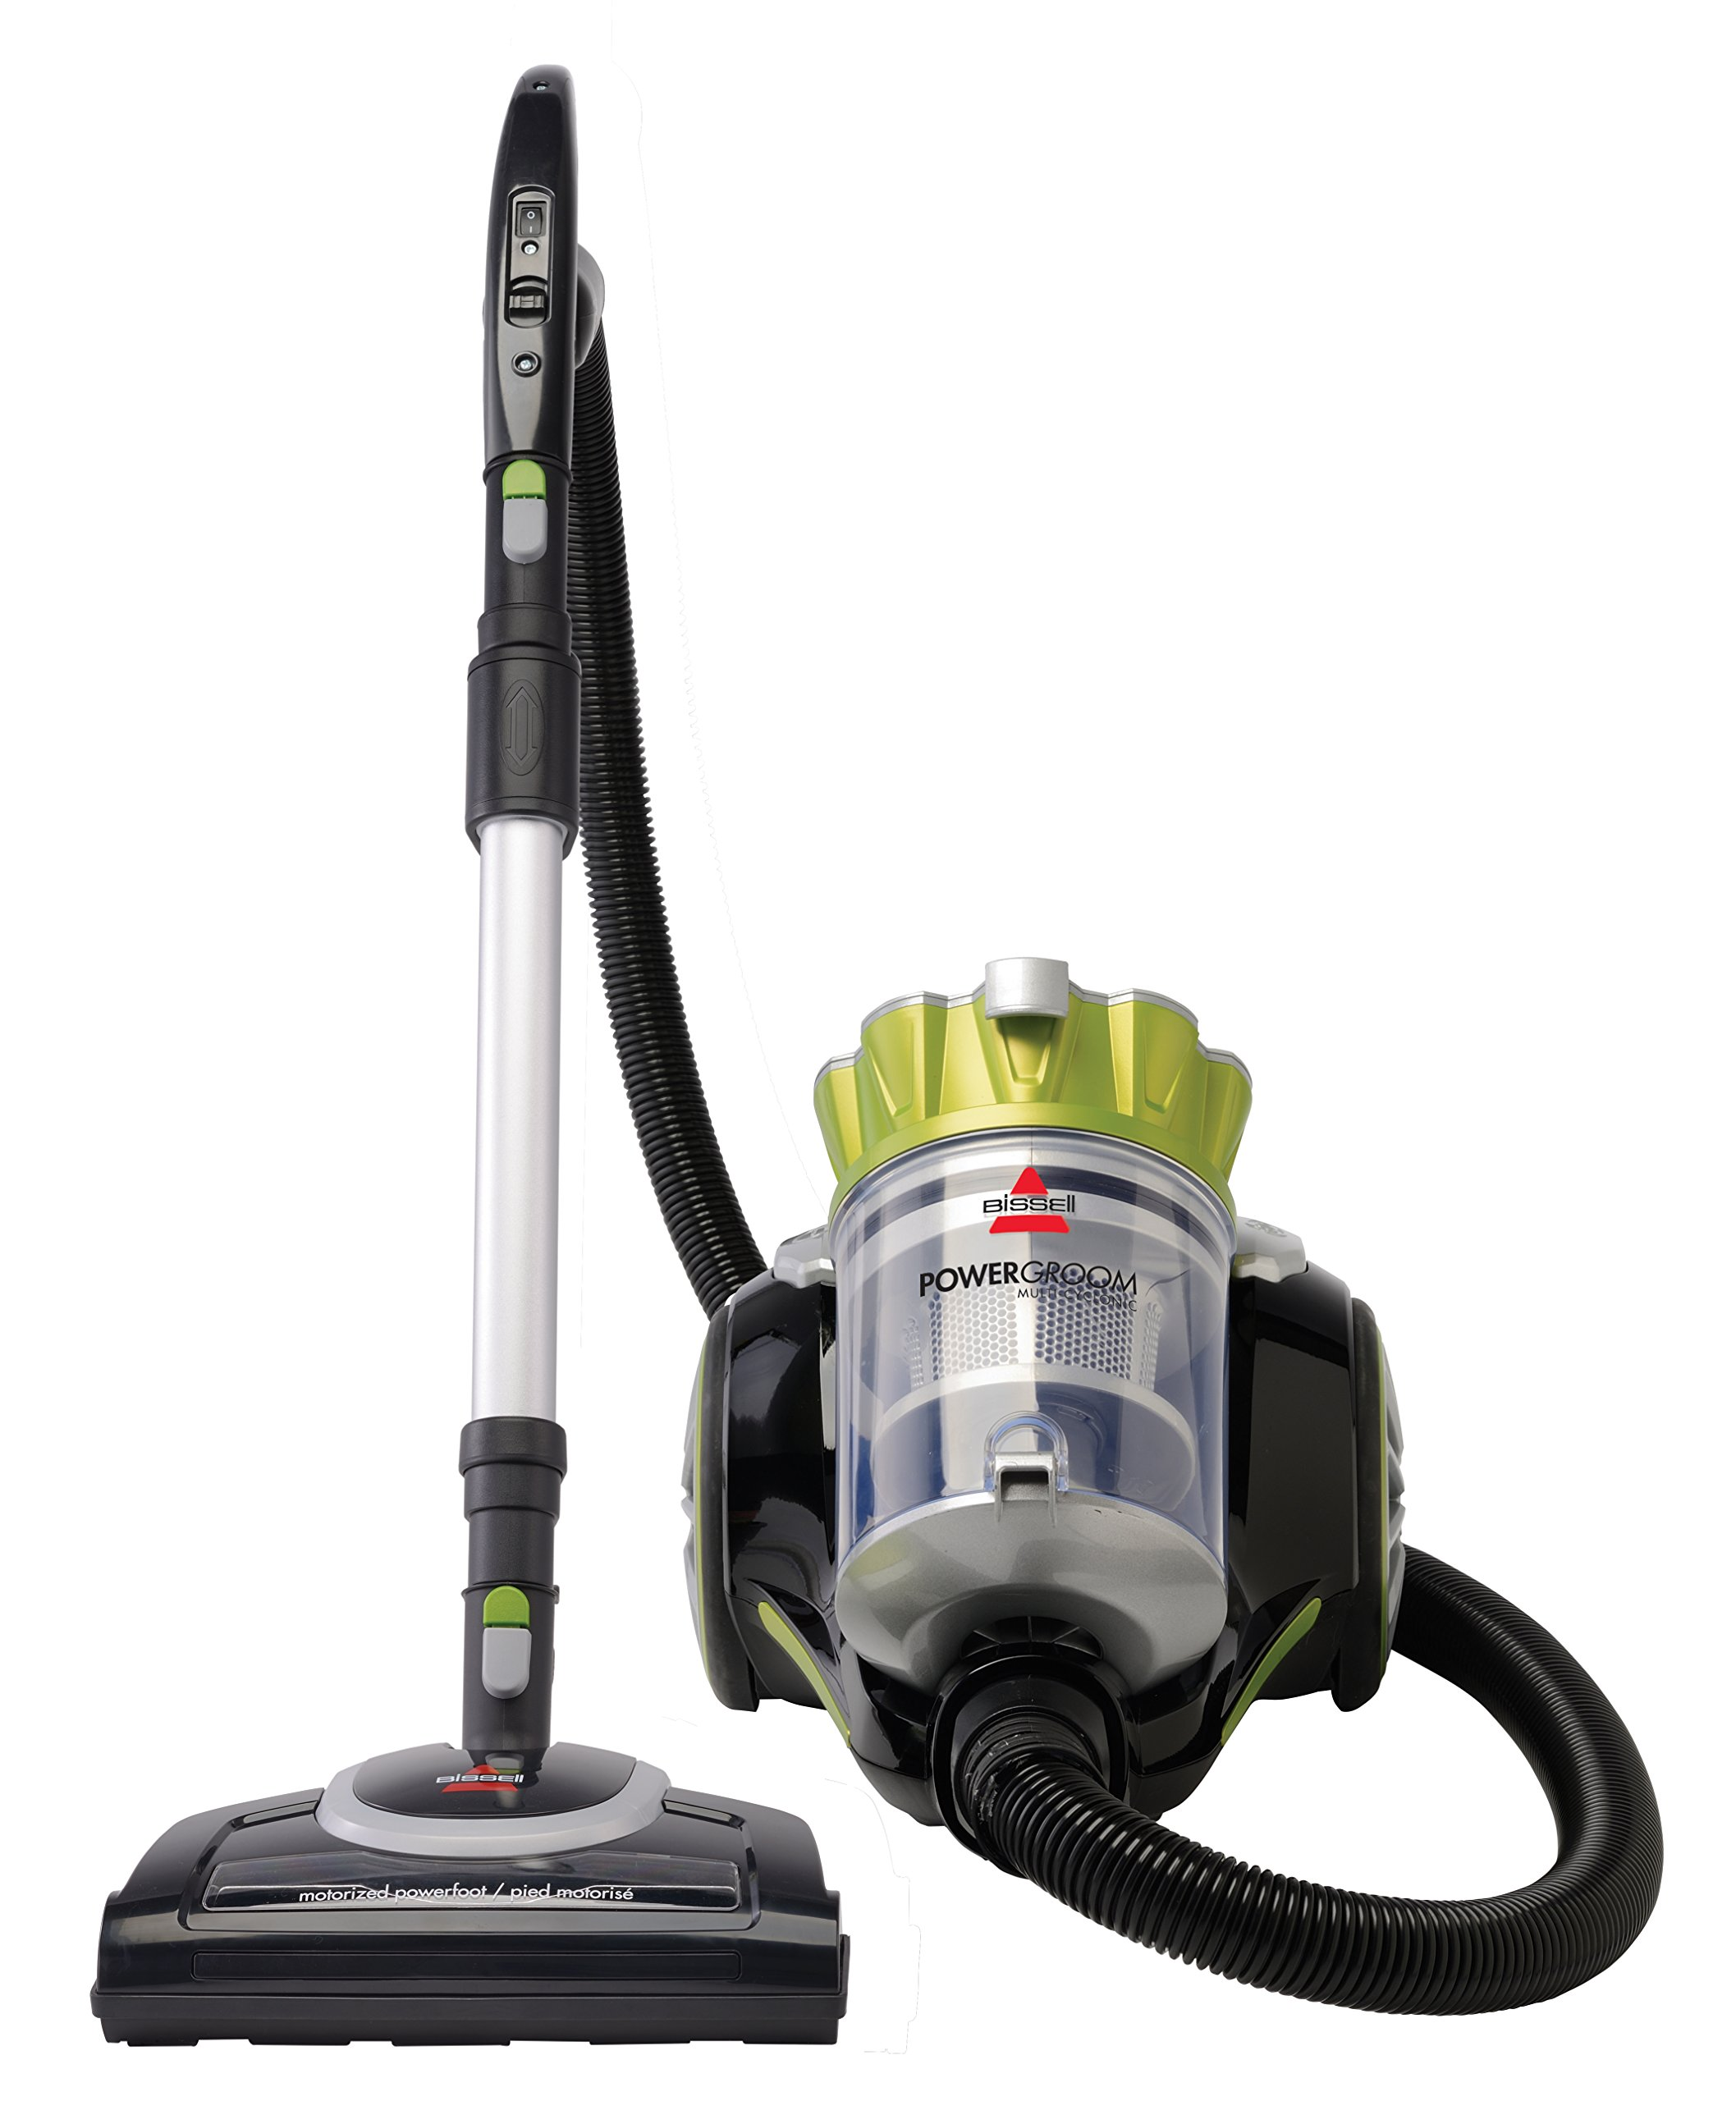 Bissell Powergroom Multicyclonic Bagless Canister Vacuum - Corded by Bissell